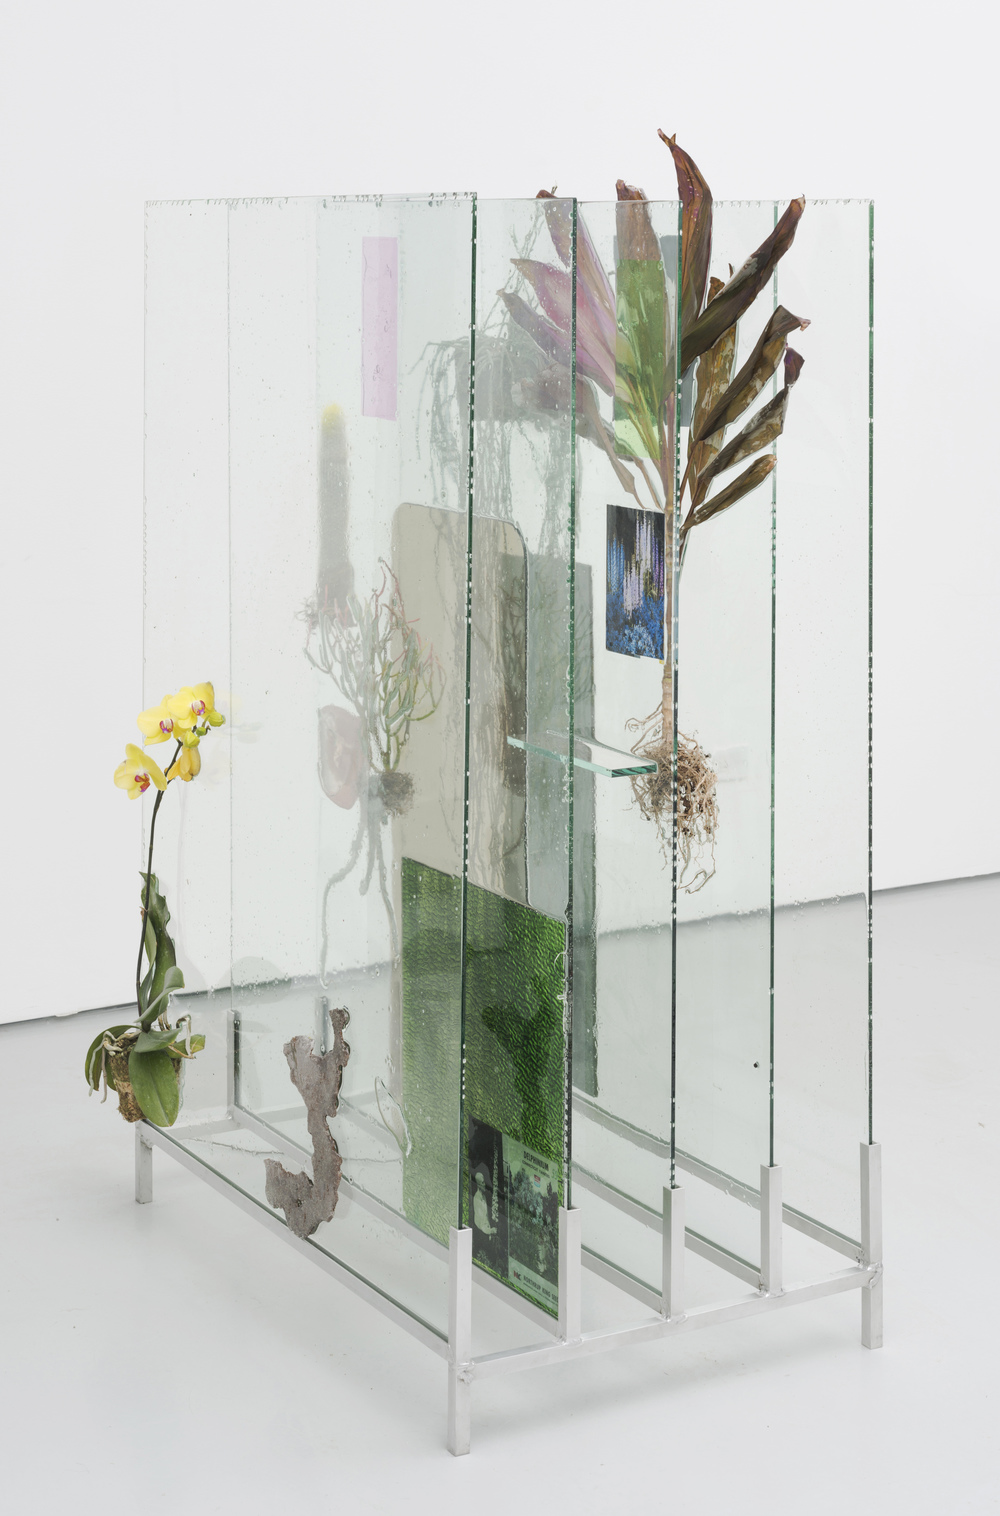 The Museum Archive (dedicated to Edward Steichen's Delphiniums, MOMA 1936), 2014. Glass, resin, plants, beam splitter glass, photo gels, photographic prints and film, 56 x 36 x 22 inches